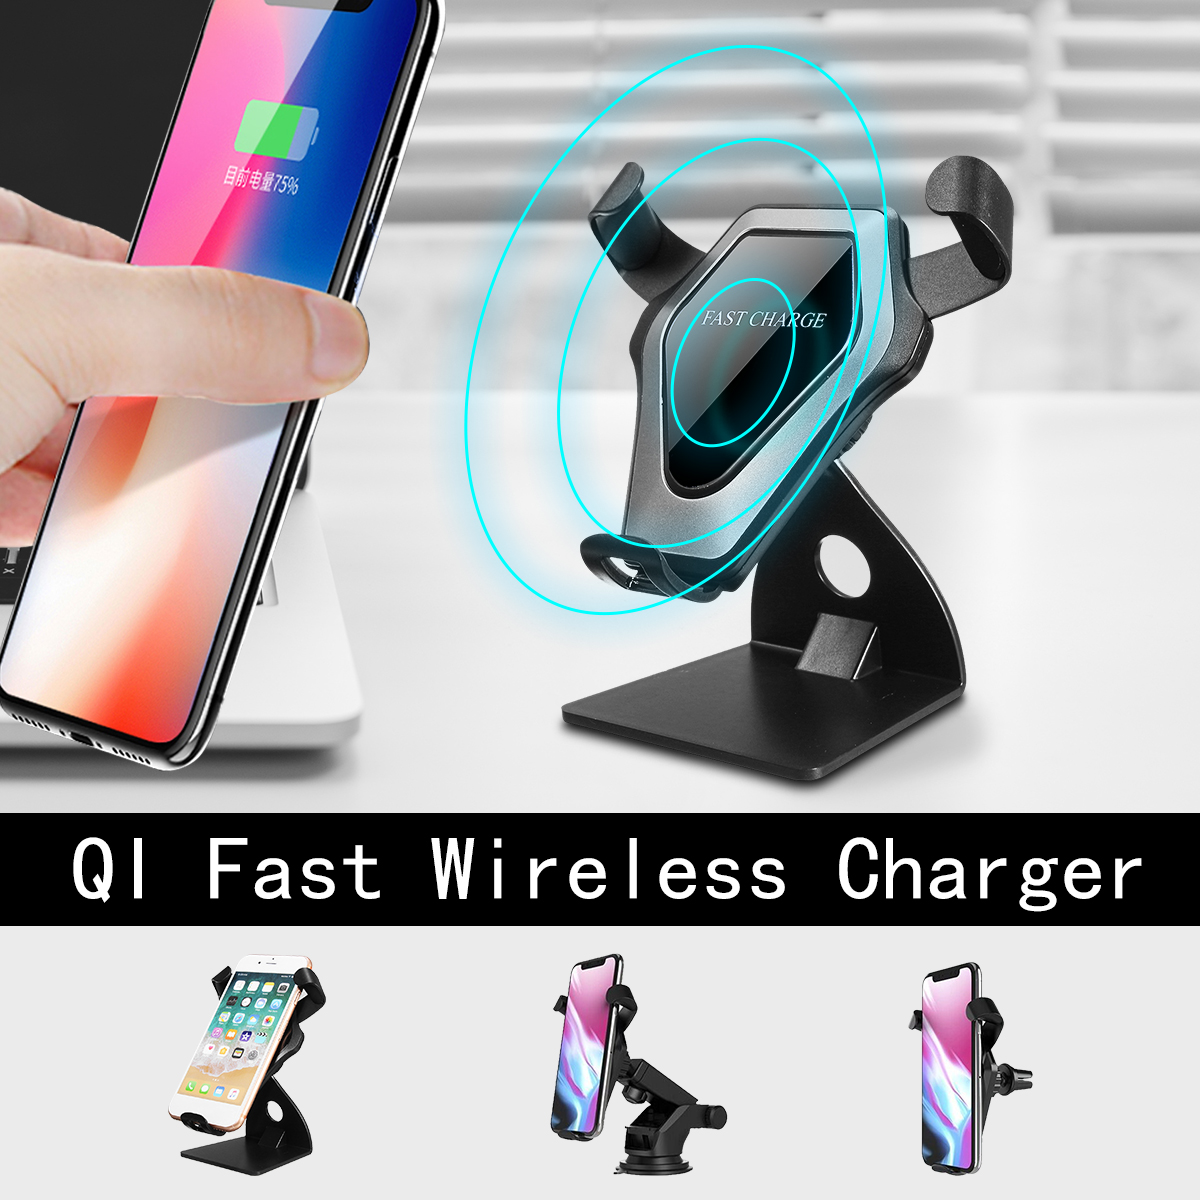 Car Air Vent Wireless Qi Standard Charger Desktop Adjustable Angle for iPhone X